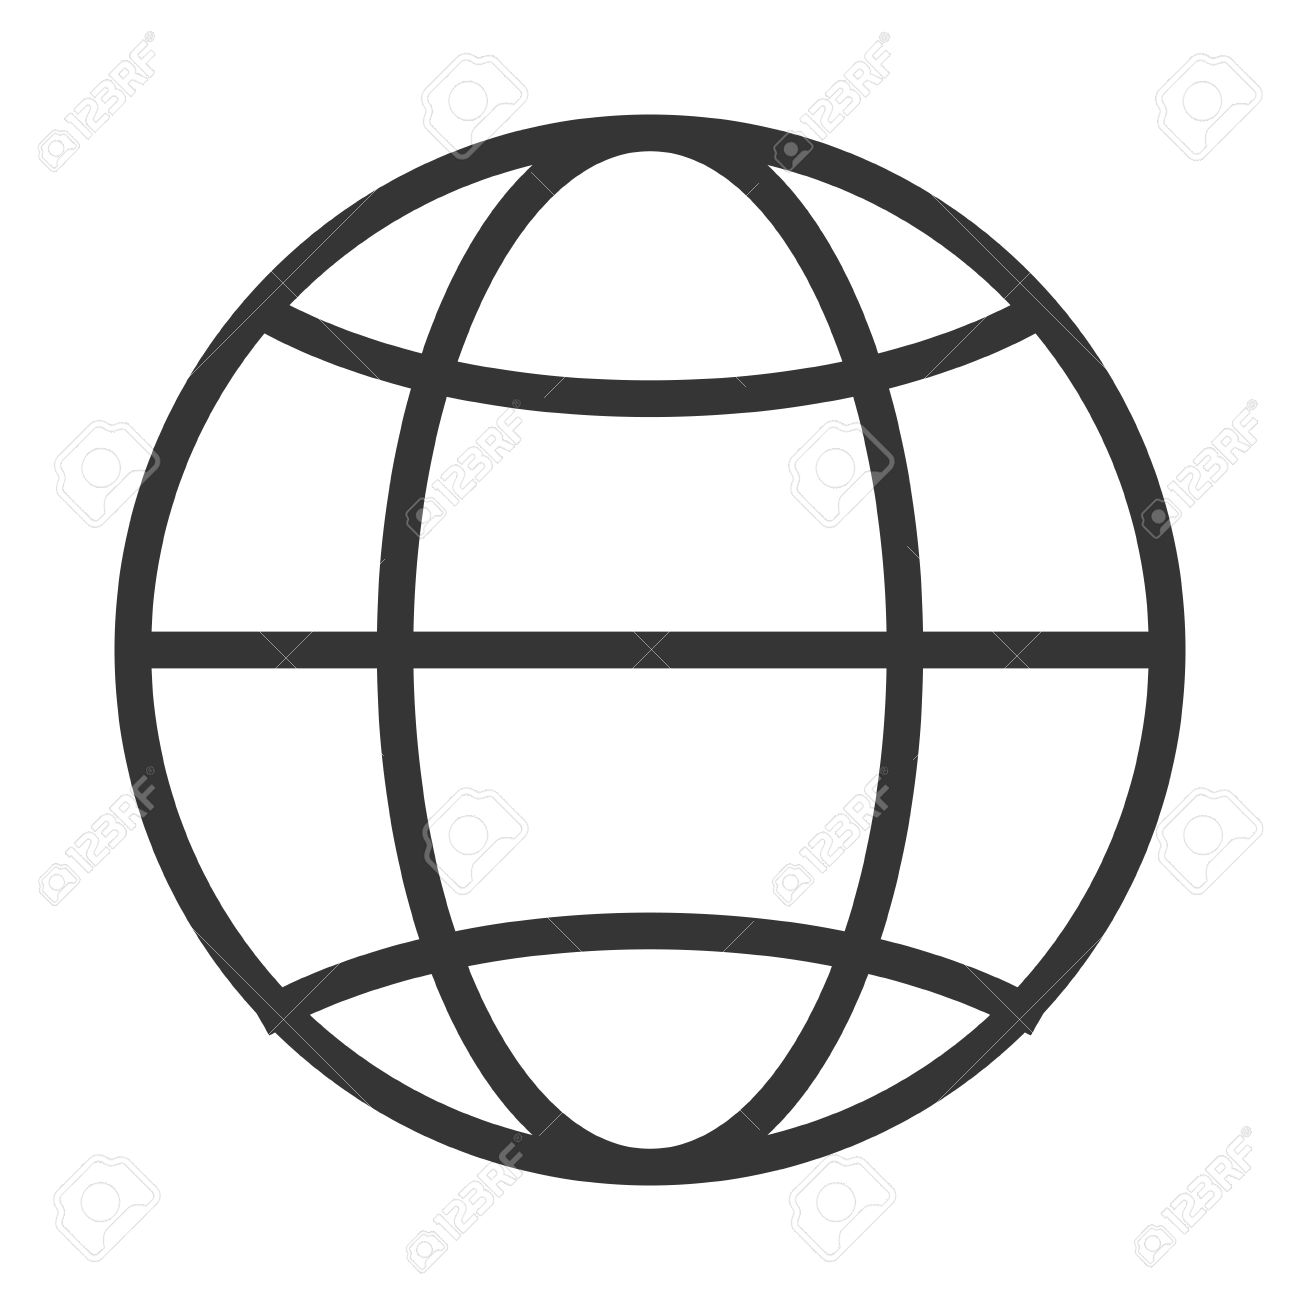 hight resolution of simple globe diagram with latitude lines and meridians vector illustration stock vector 58651410